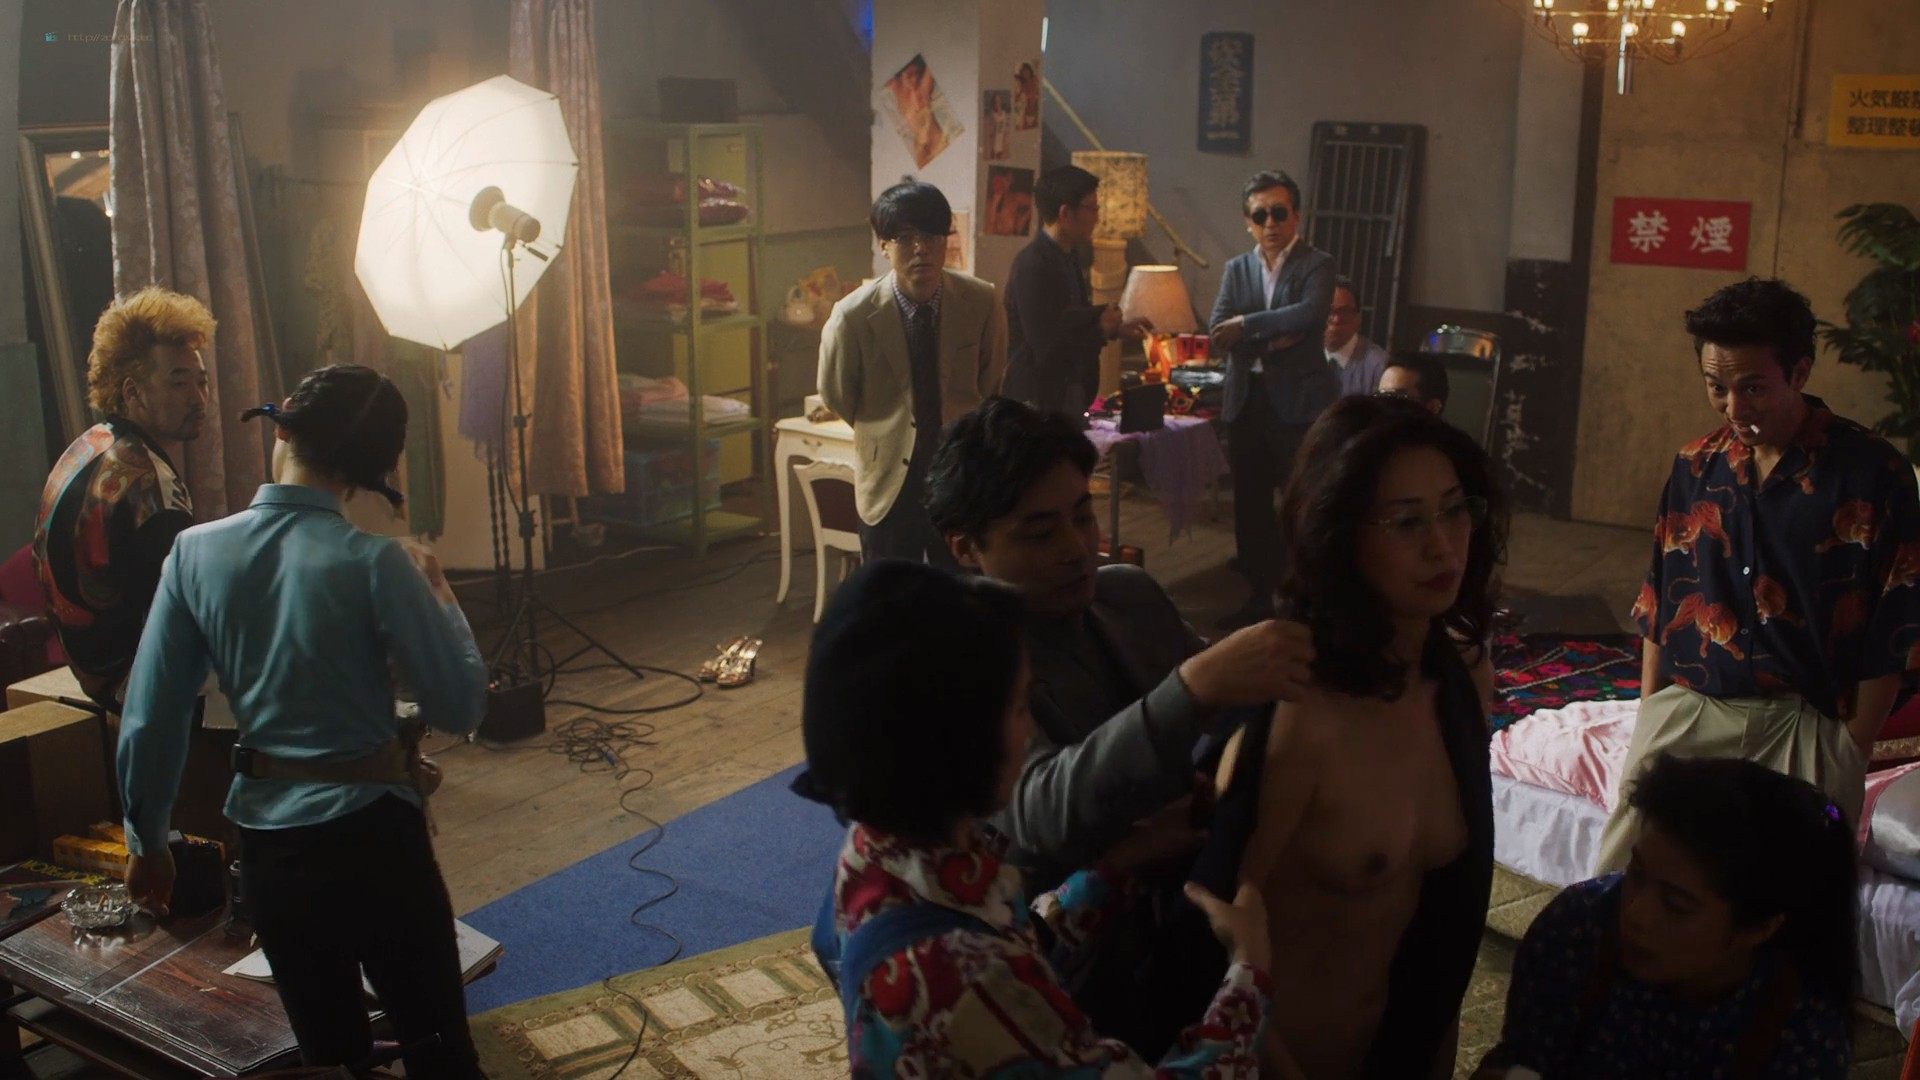 Misato Morita naked in the shower rest nude - The Naked Director (2019) s1e2 HD 1080p (11)